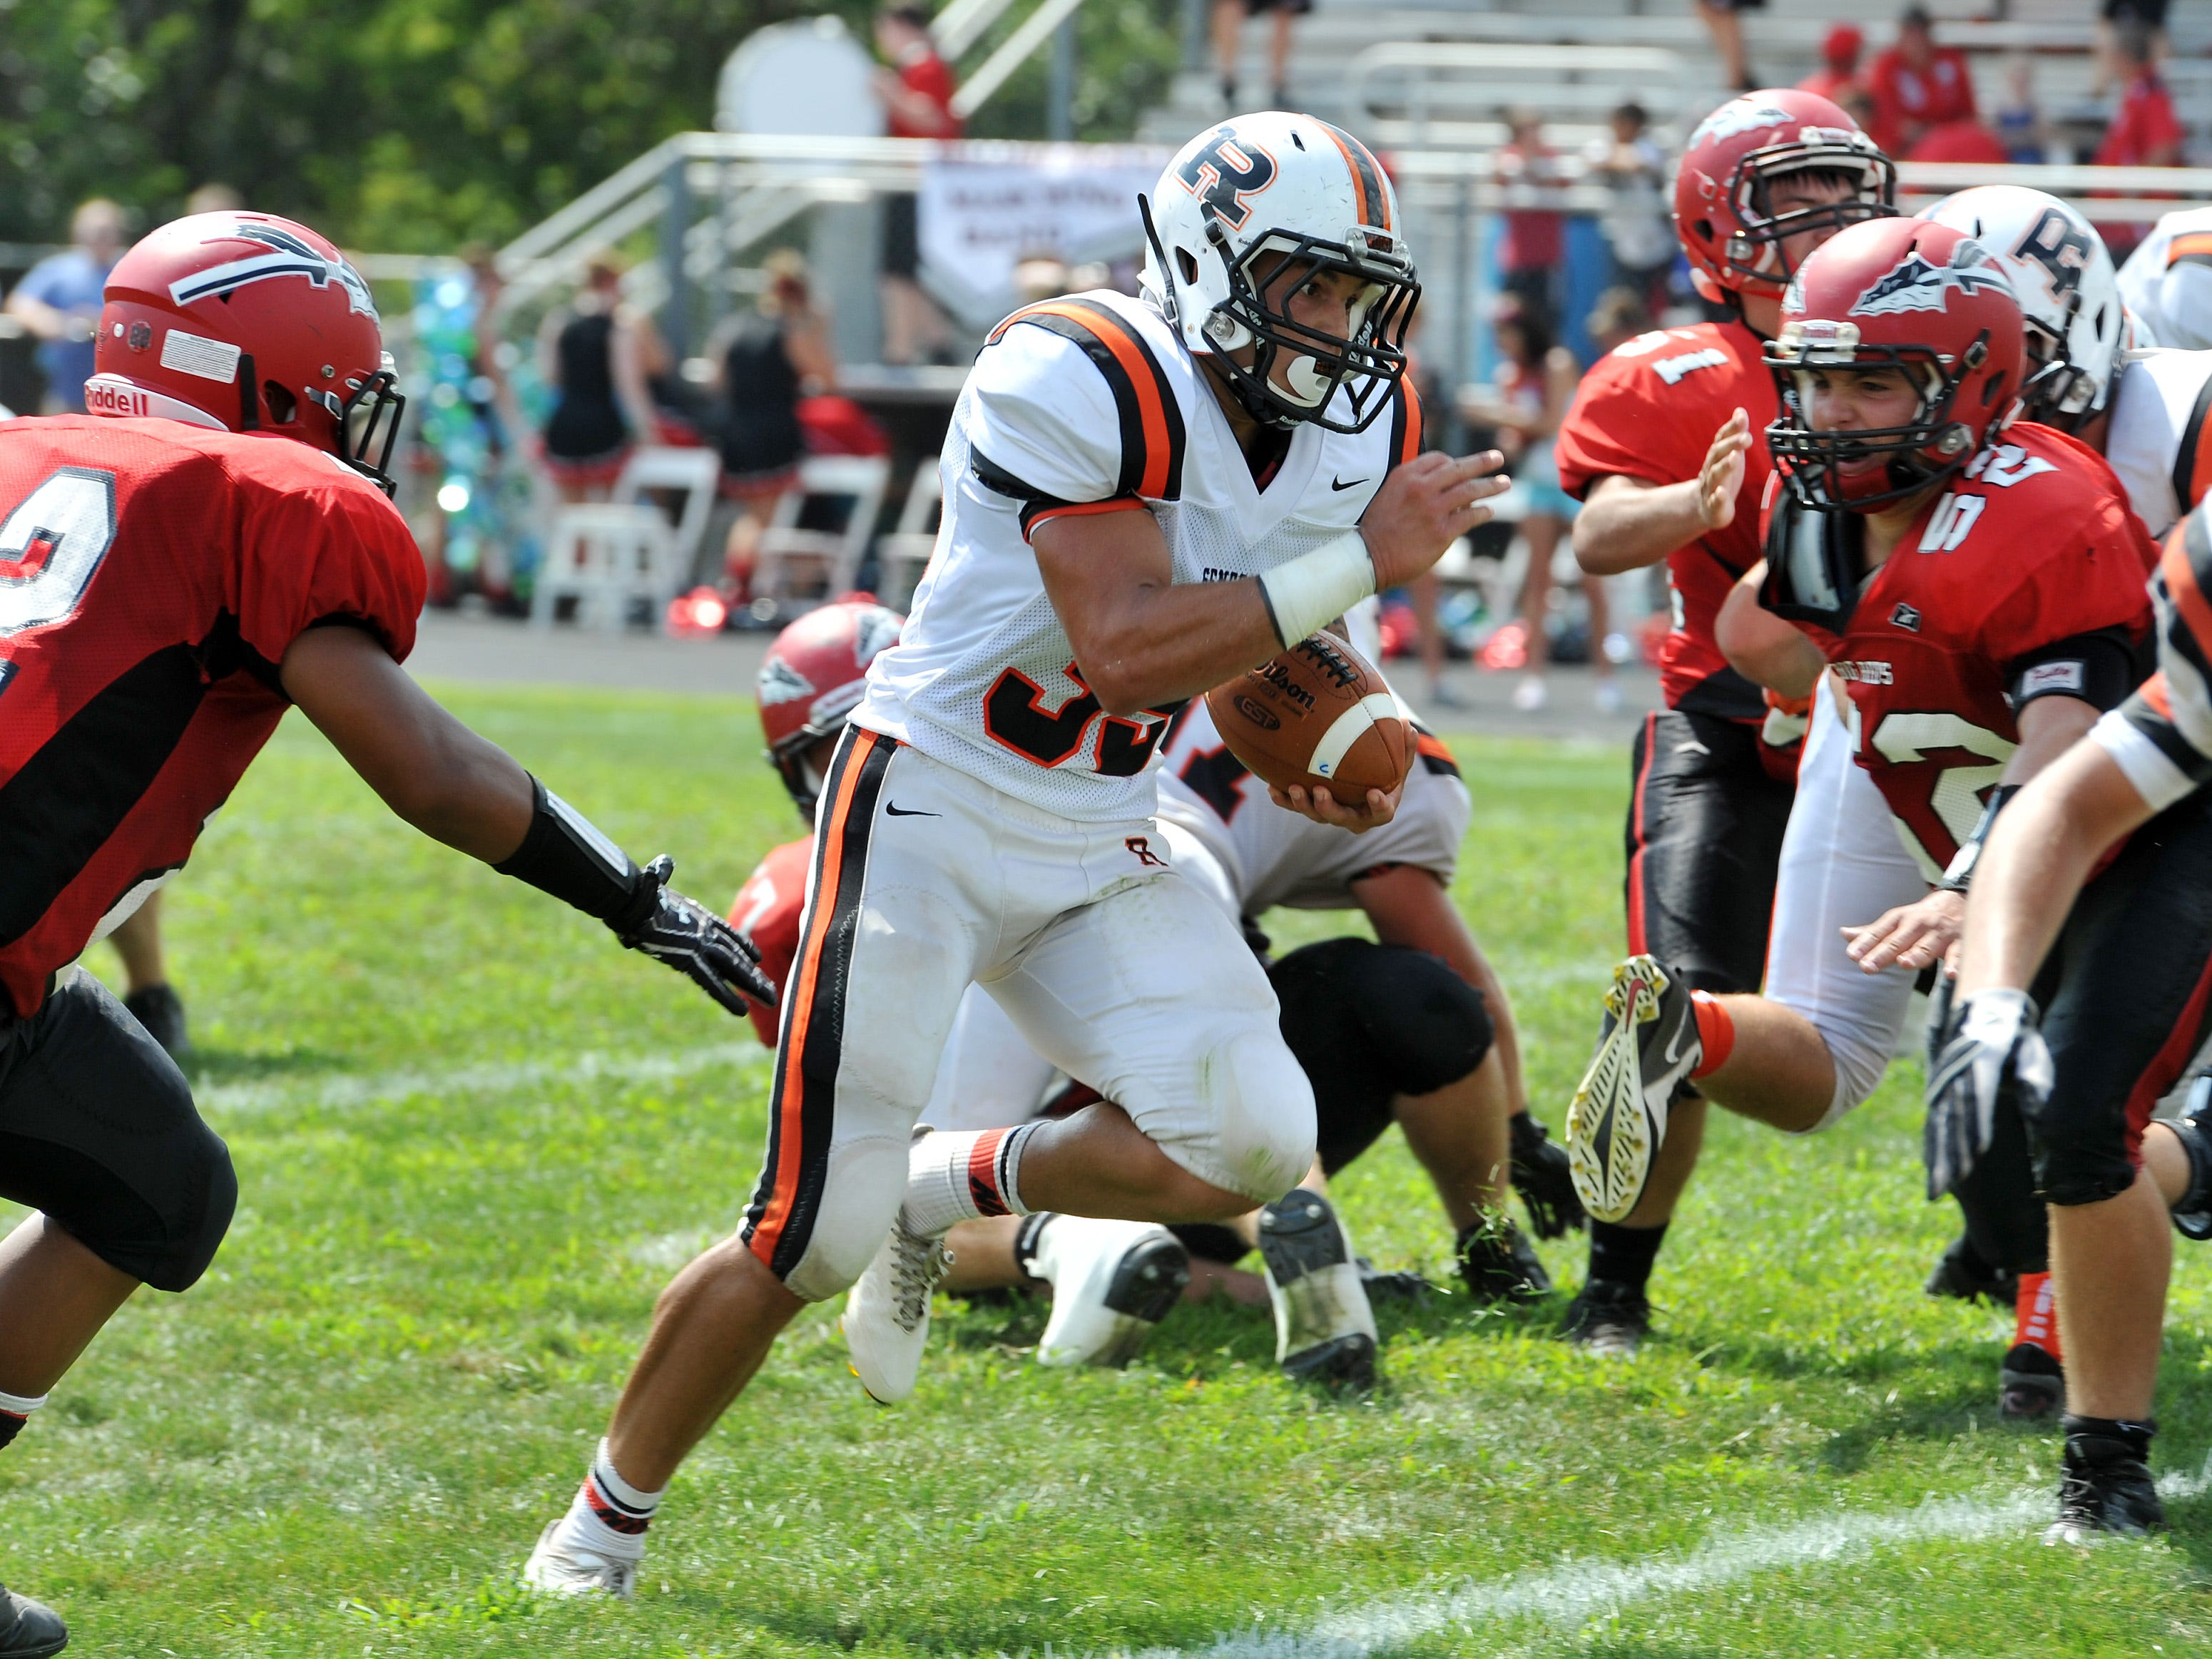 Ridgewood's Zach Donley runs through a gap on his way to the end zone against Bellaire Aug. 30.